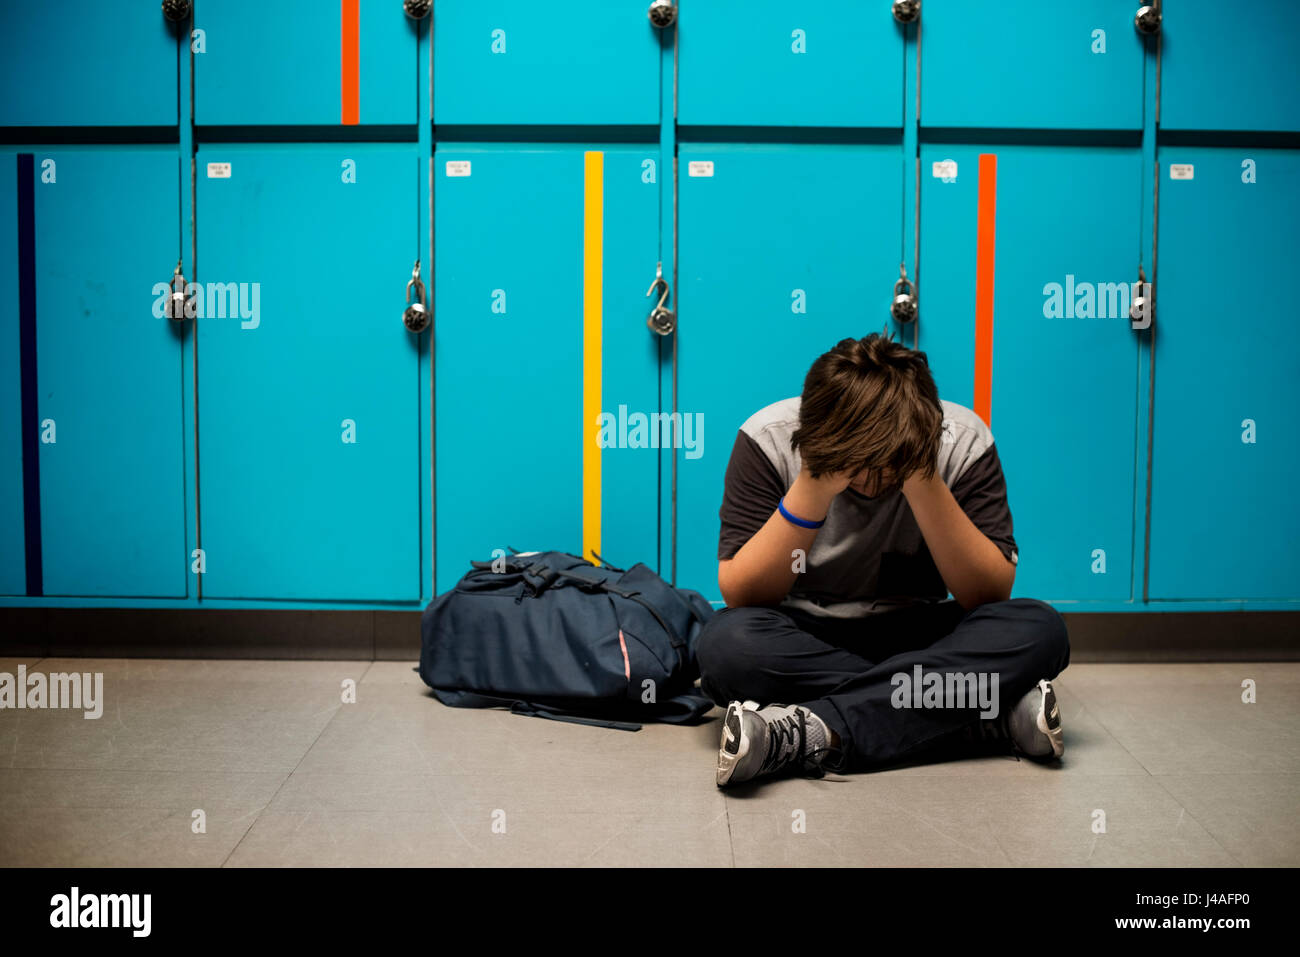 the widespread issue of school bullying - bullying in schools many people feel that some of the major issues that plague our schools are drug/alcohol use or violence, yet no one recognizes the significance of school bullying for the victims of bullying, they go to school everyday facing harassment, taunting, and humiliation.